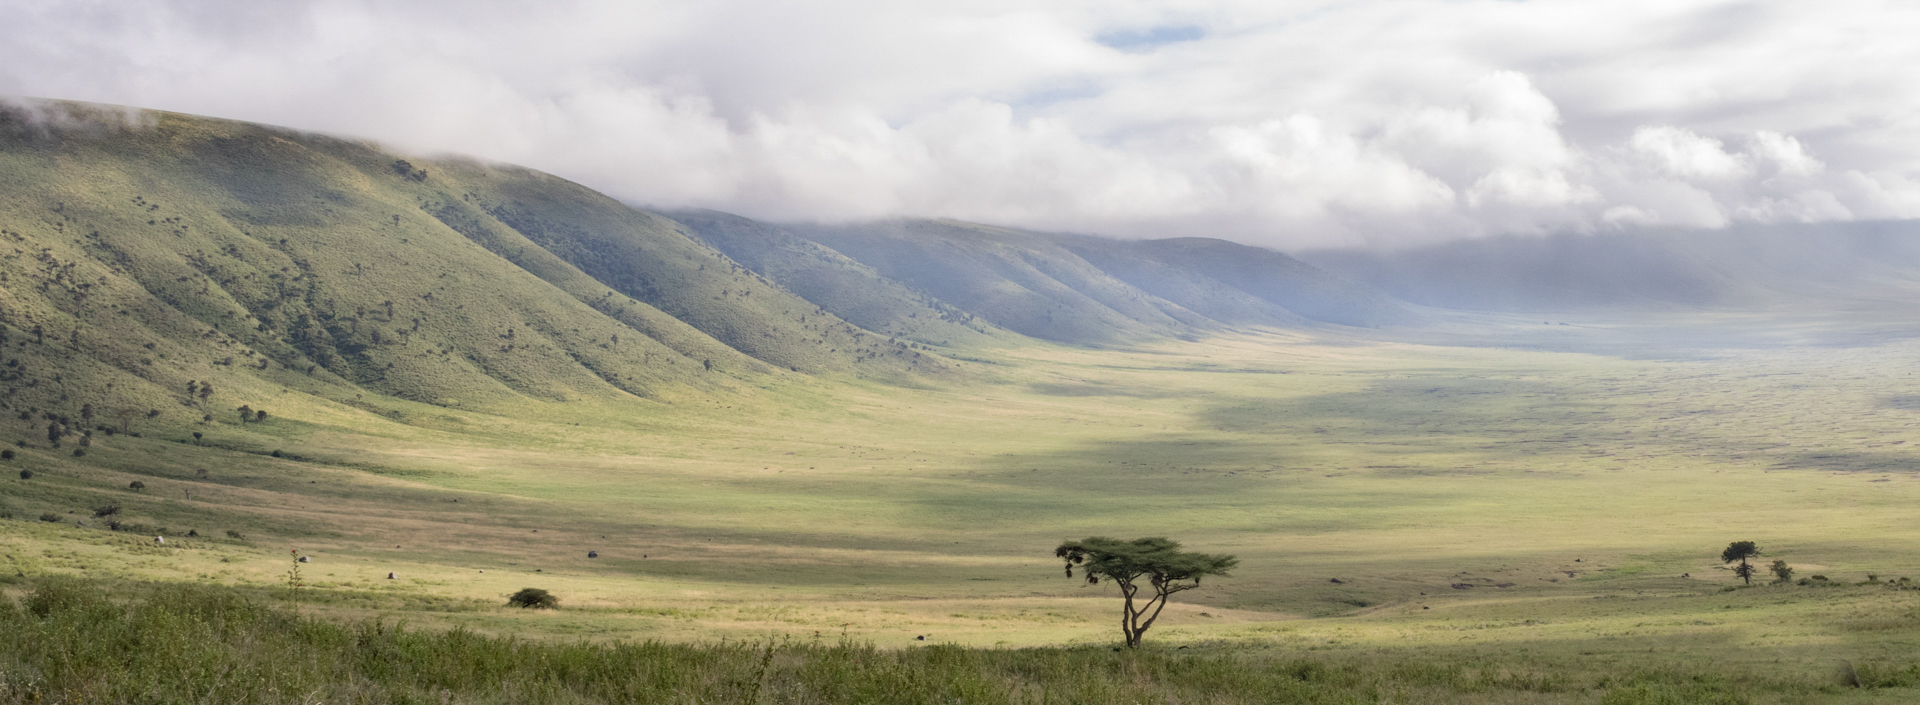 Cloud clearing in Ngorongoro Crater